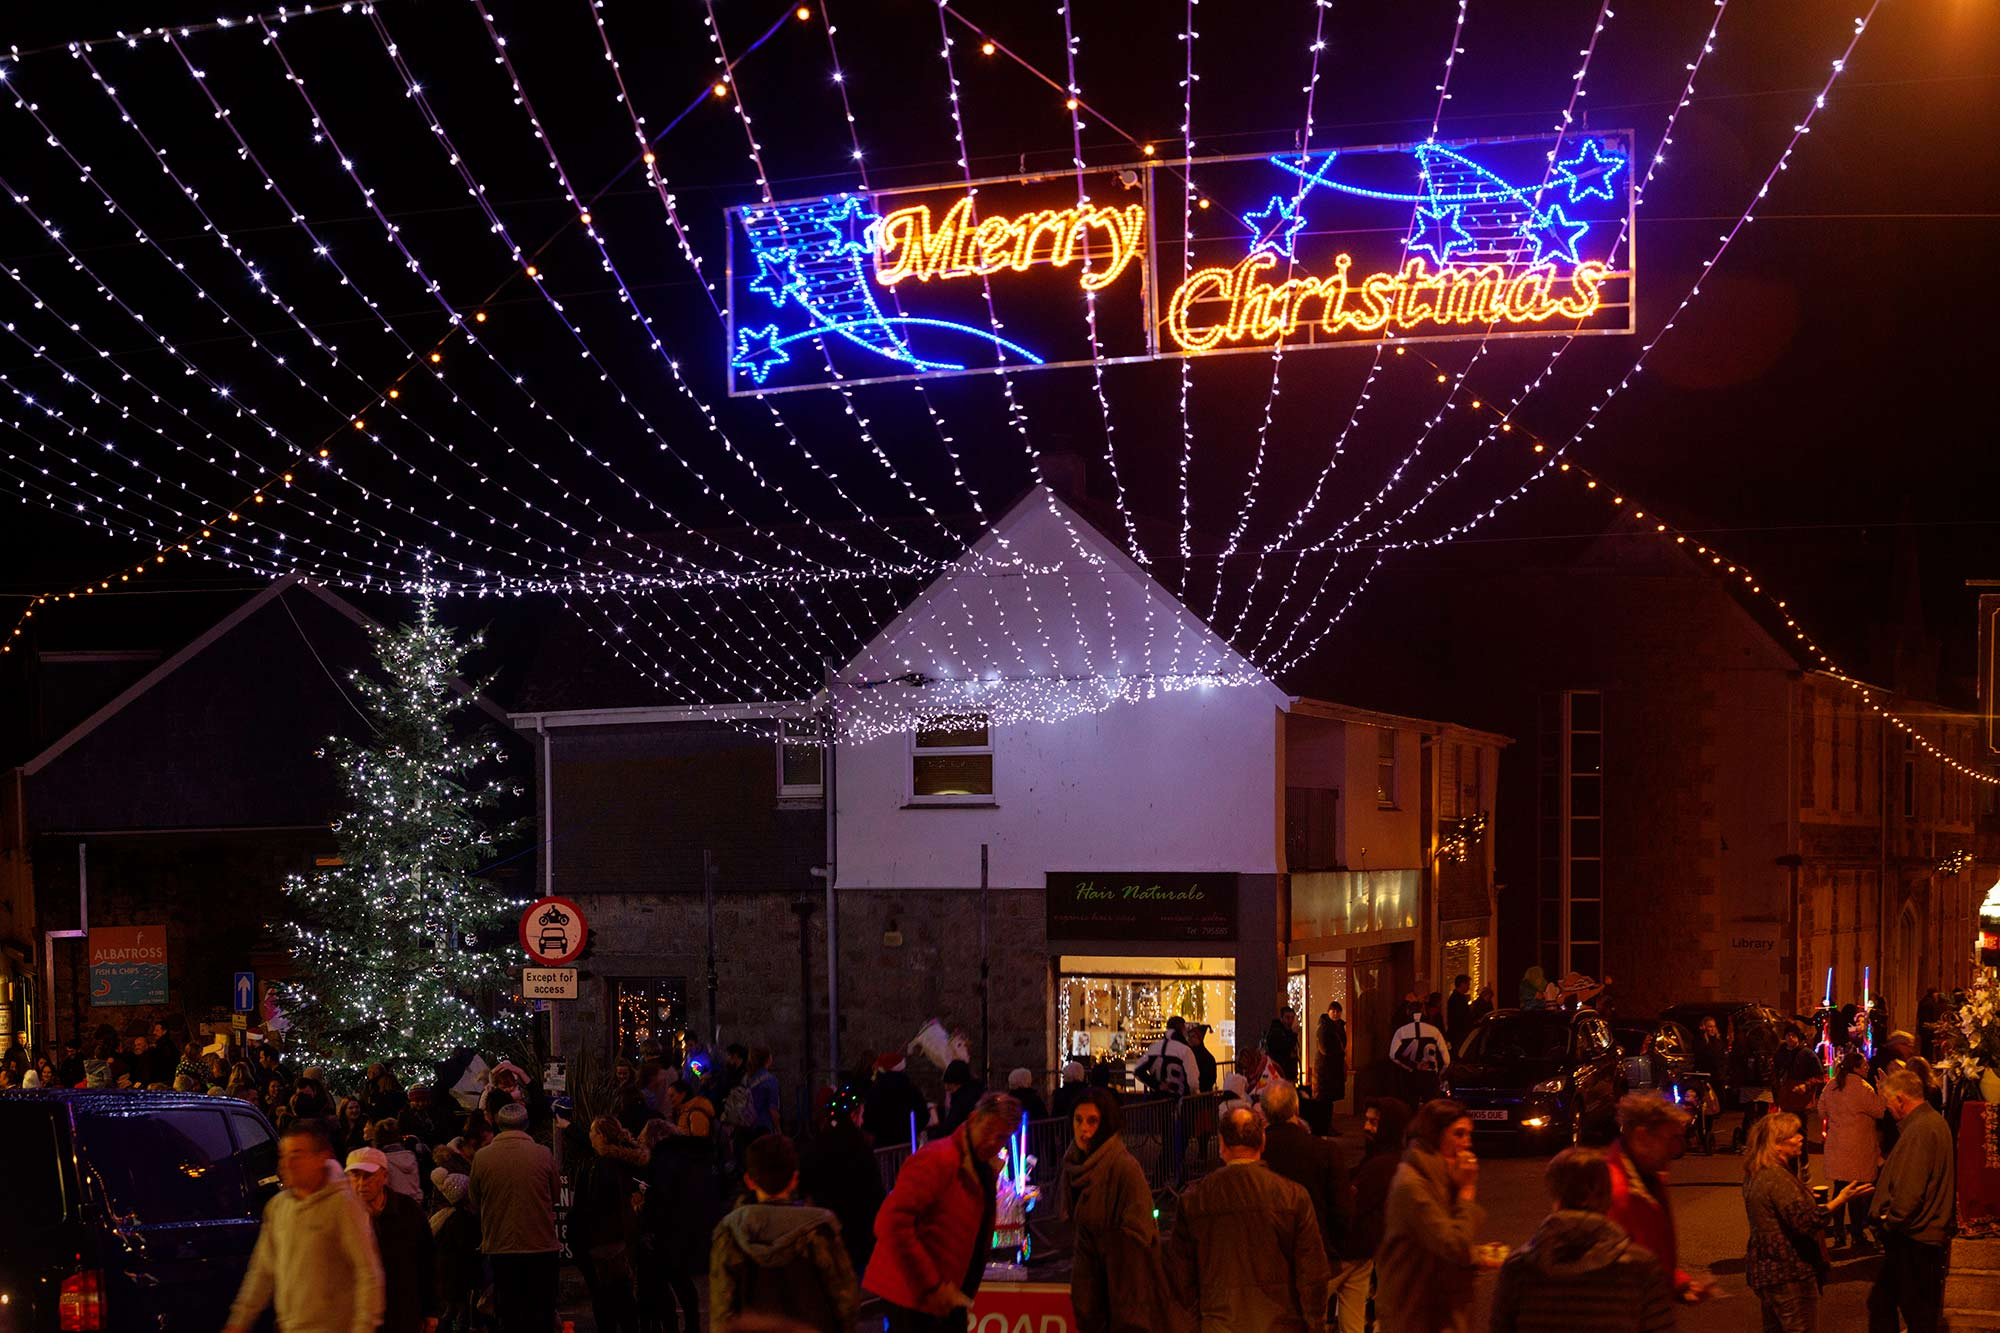 Nominate Someone to Switch On the Christmas Lights